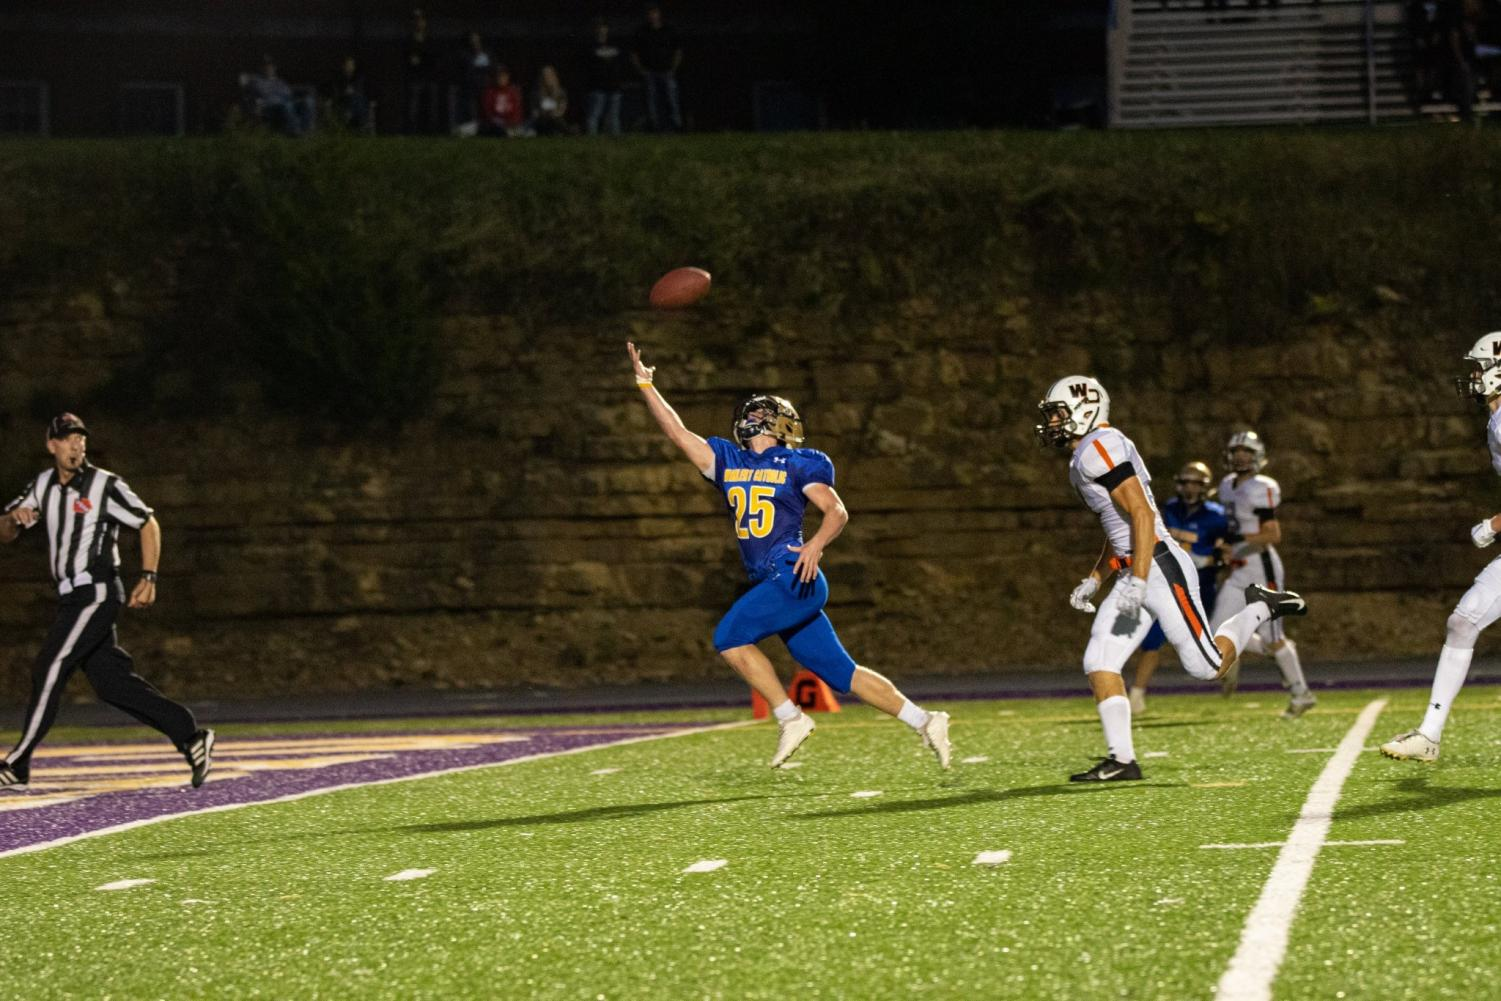 Jake Brosius '21 reaches for a one handed touchdown catch to score Wahlert's first touchdown of the season.